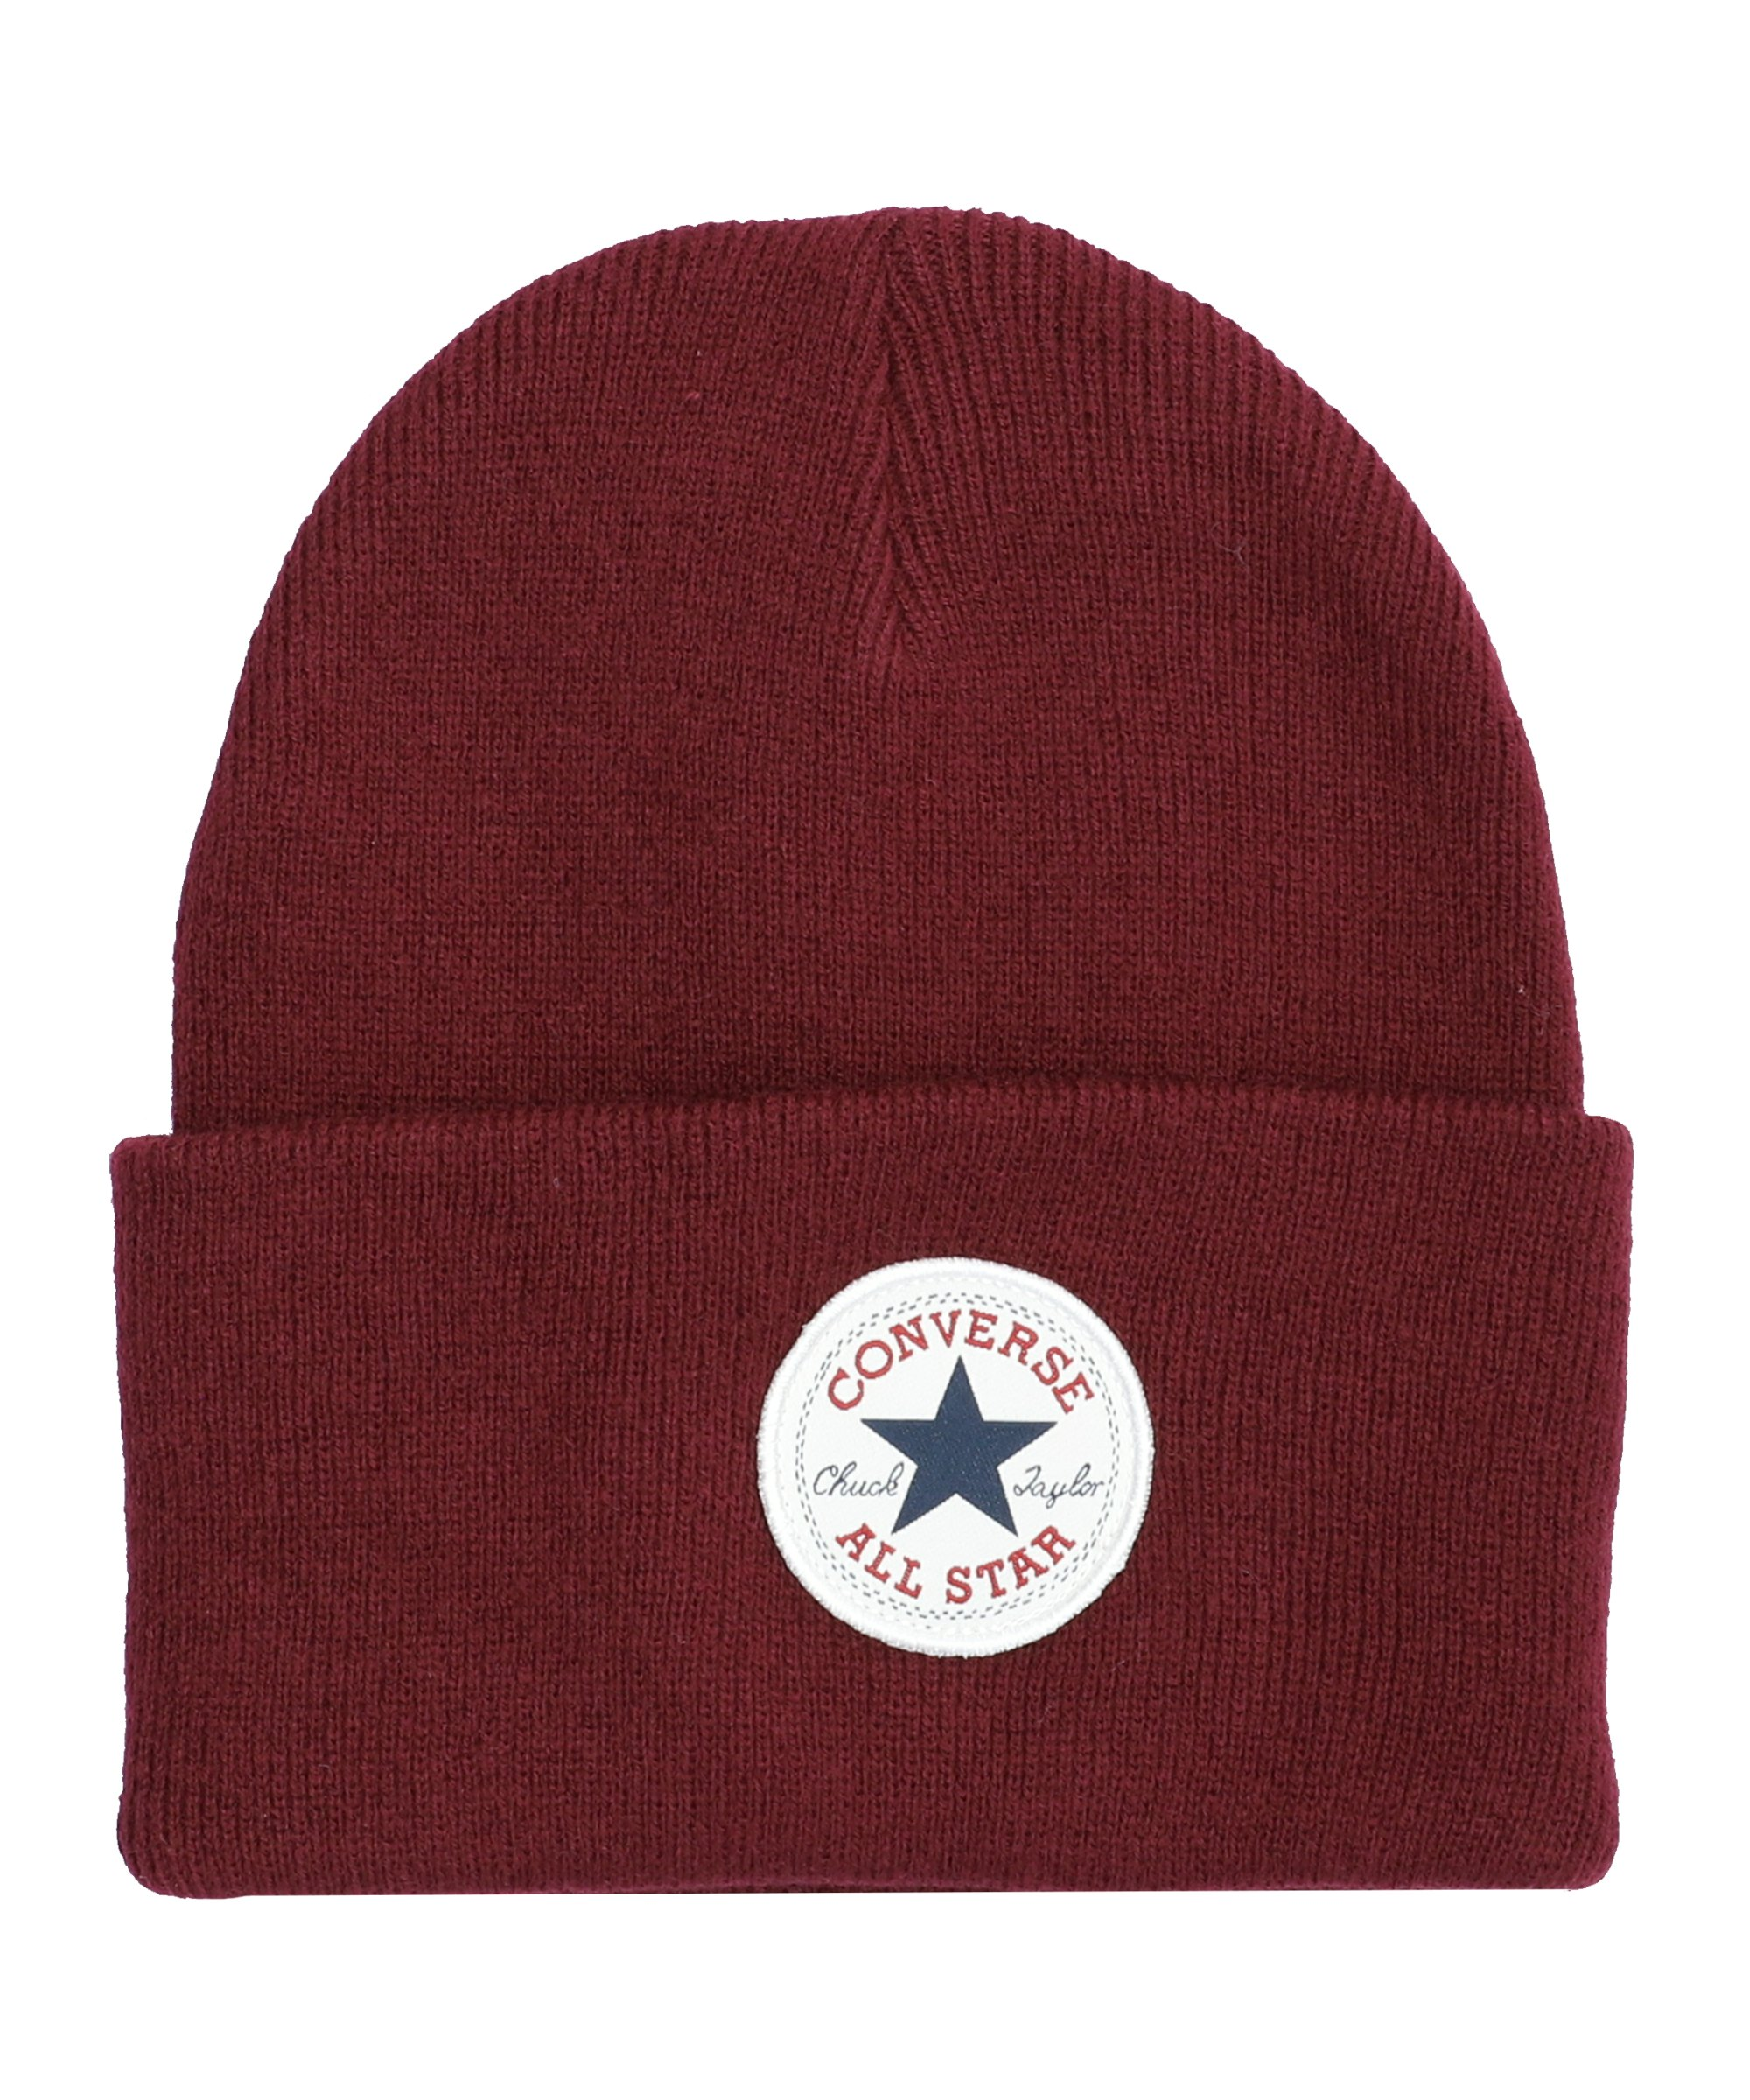 Converse Tall Chuck Patch Beanie Rot F613 - rot